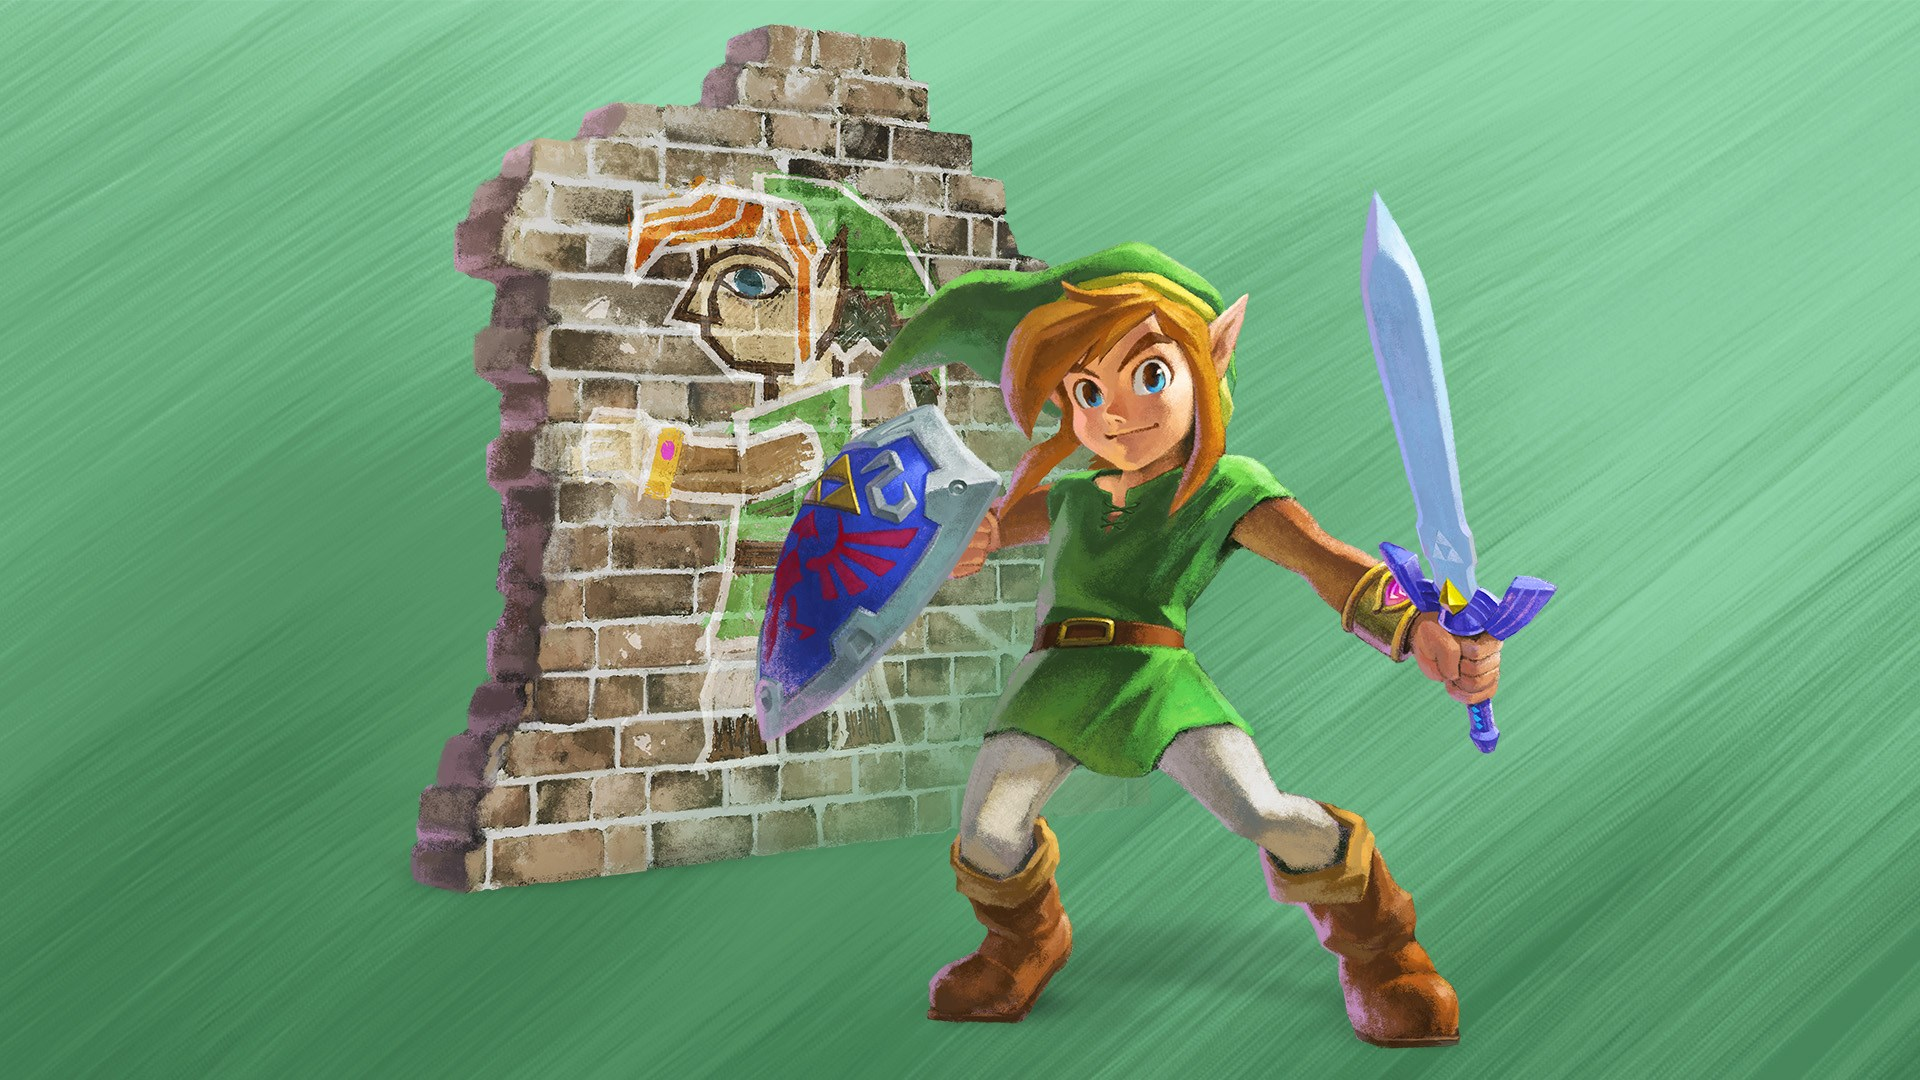 1920x1080-windows-the-legend-of-zelda-a-link-between-worlds-wallpaper-wp340998